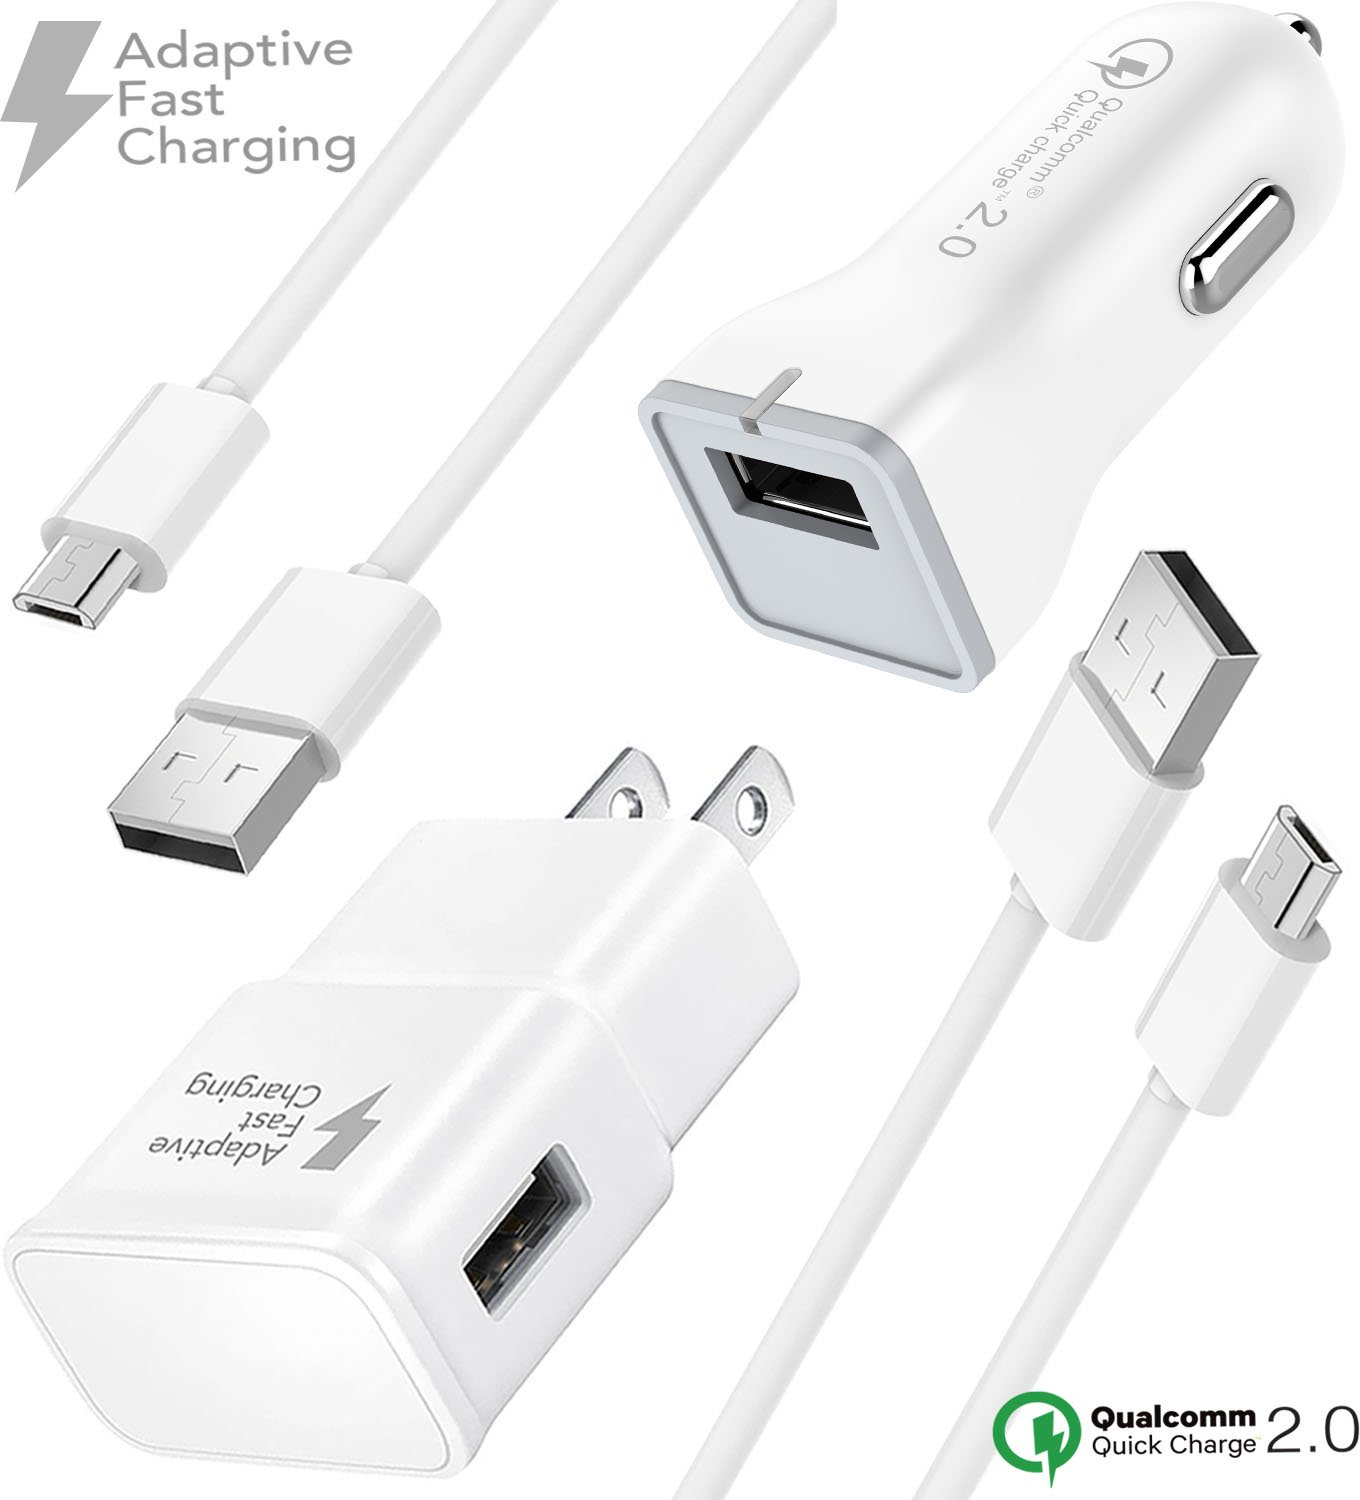 AT&T Samsung Galaxy S5 Active Charger Fast Micro USB 2.0 Cable Kit by Boxgear - (Fast Wall Charger + Fast Car Charger + 2 Cable)